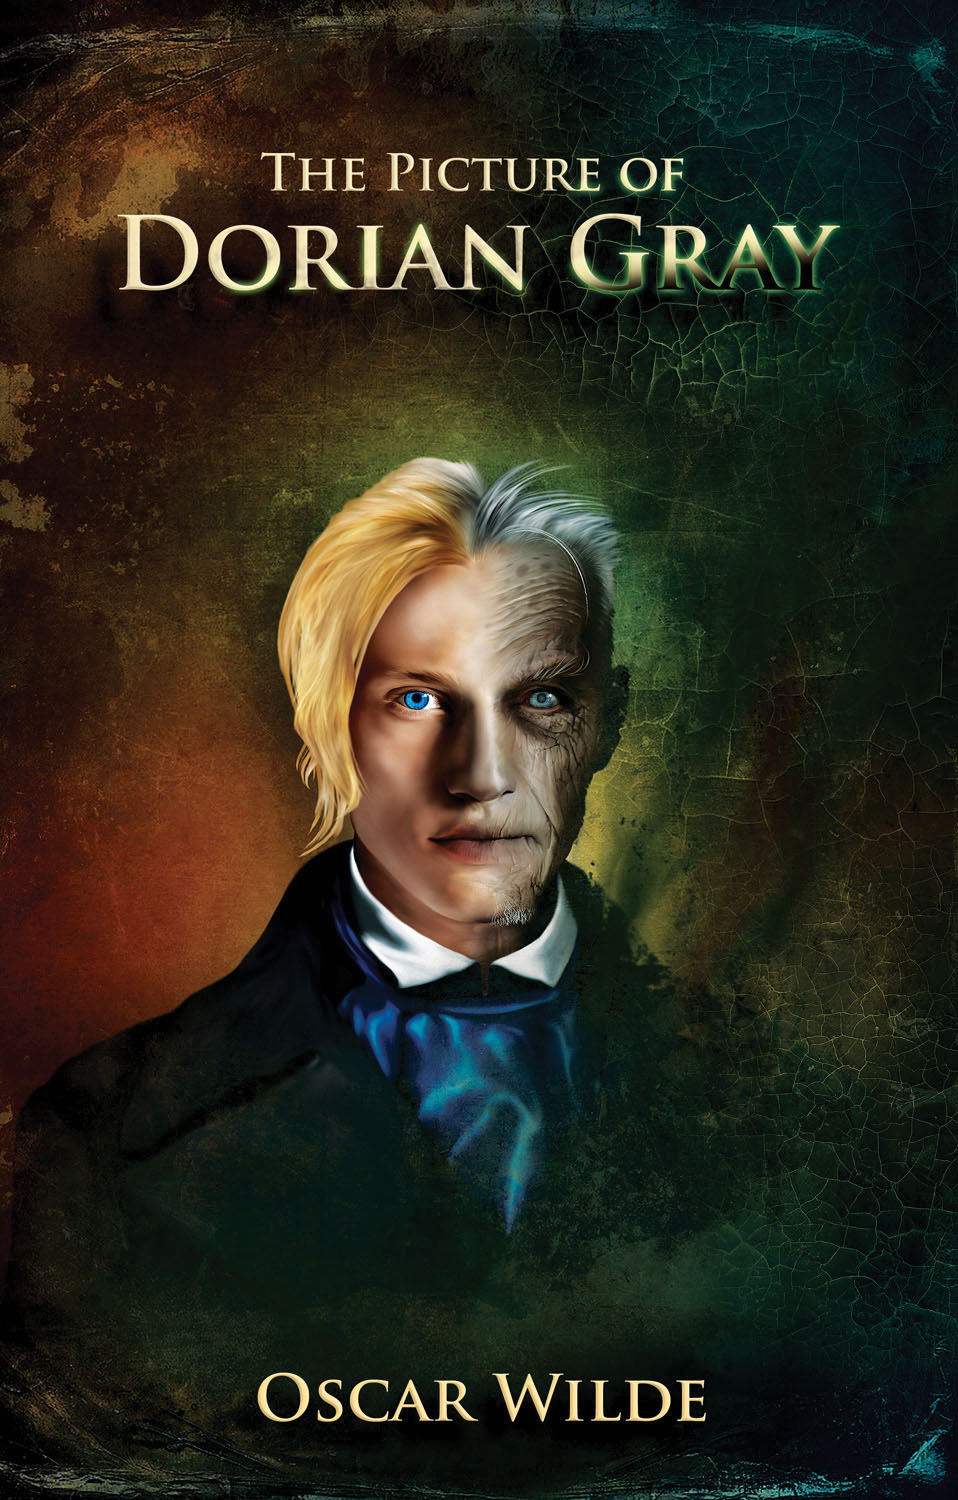 「The Picture of Dorian Gray book」の画像検索結果